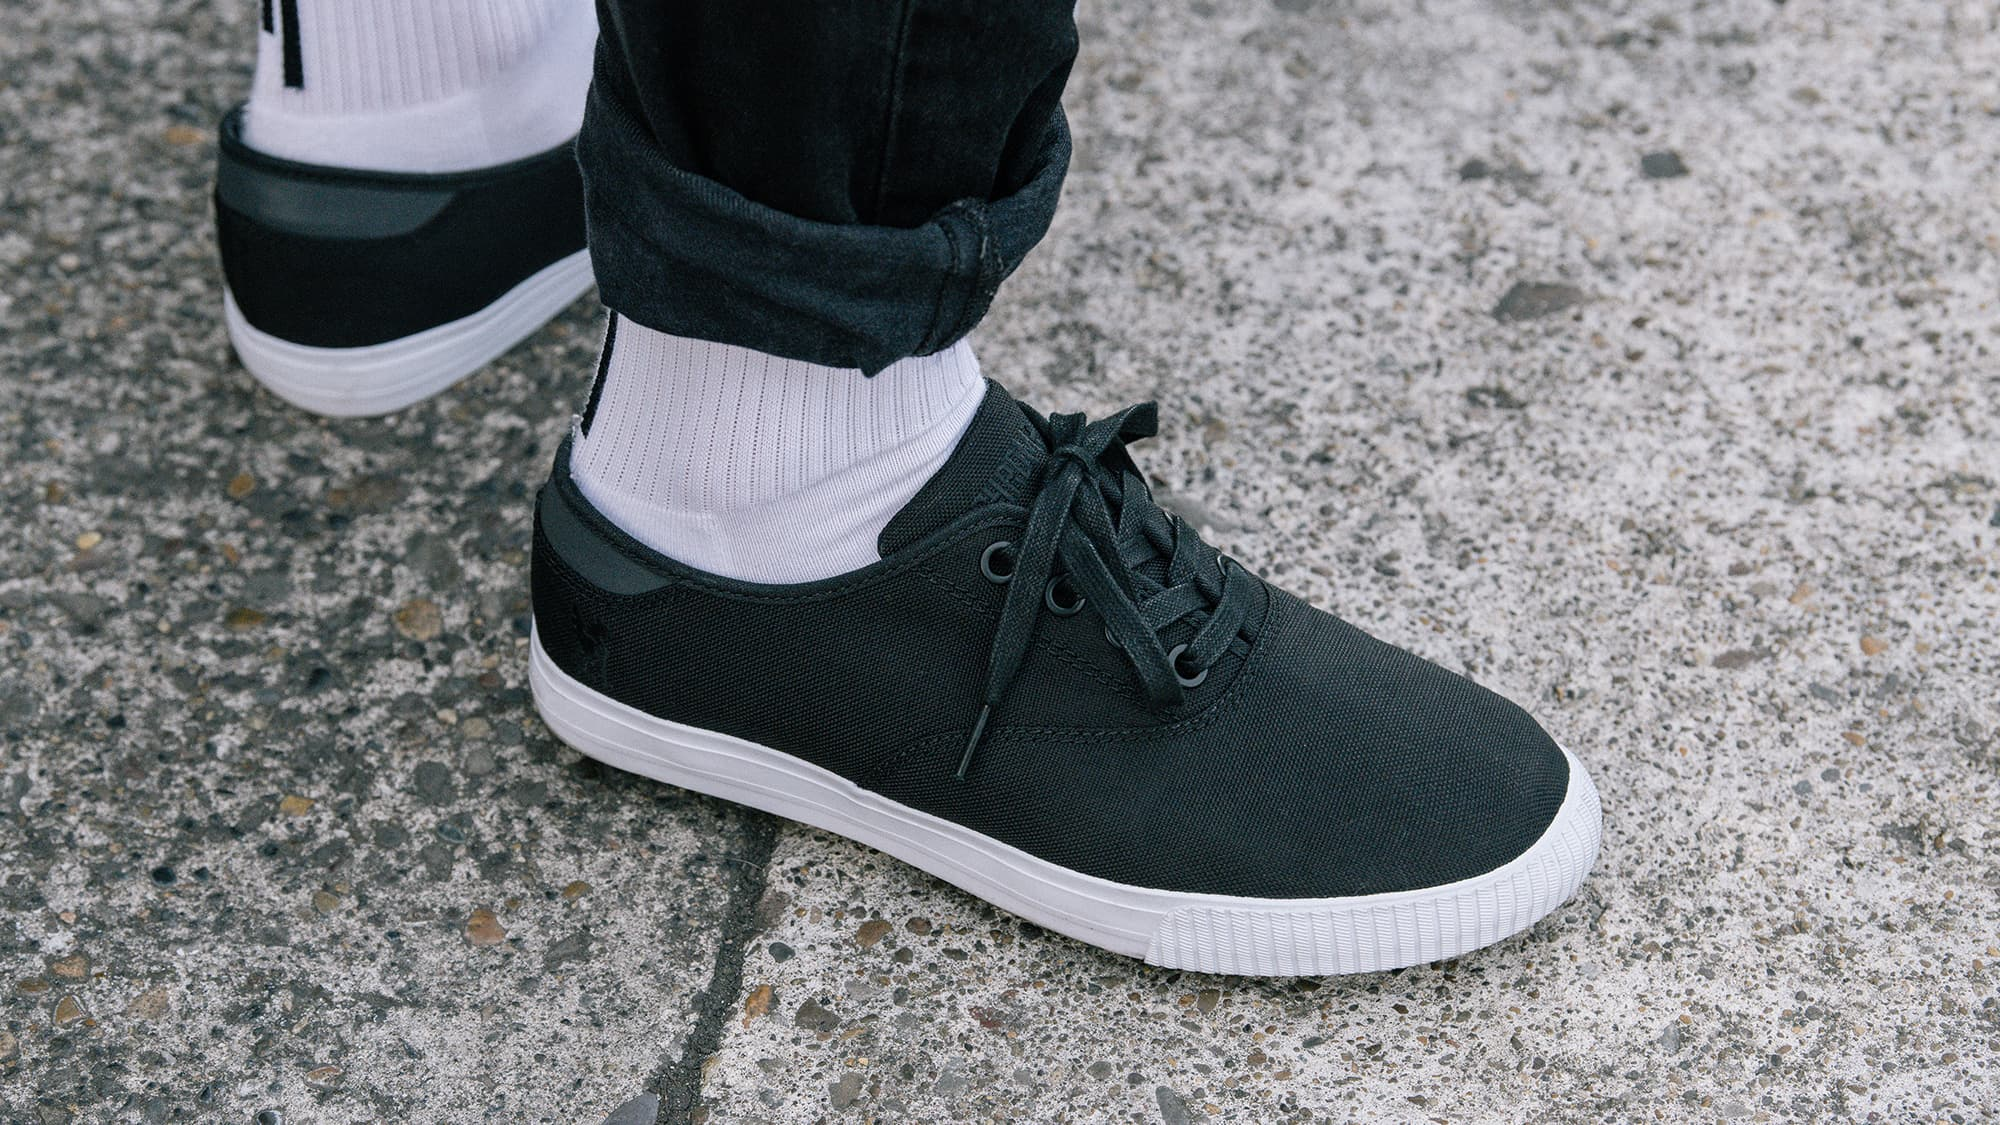 Truk sneakers worn with white socks in style